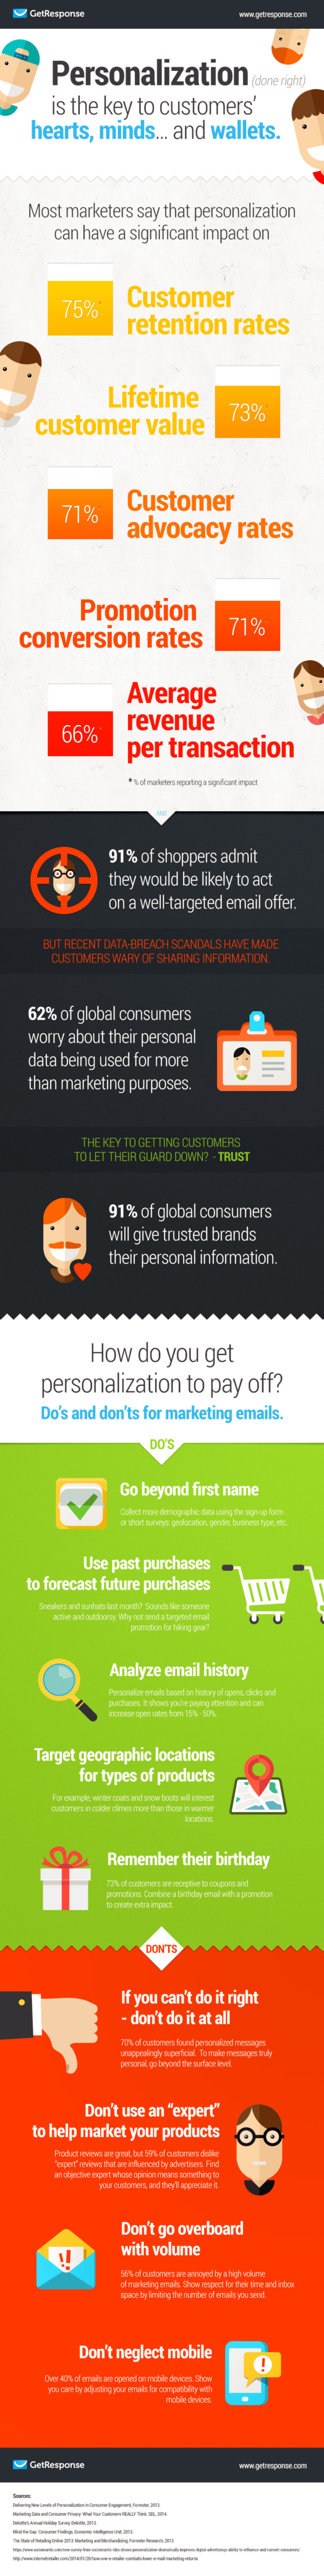 personalization - the key to customers' hearts, minds and wallets